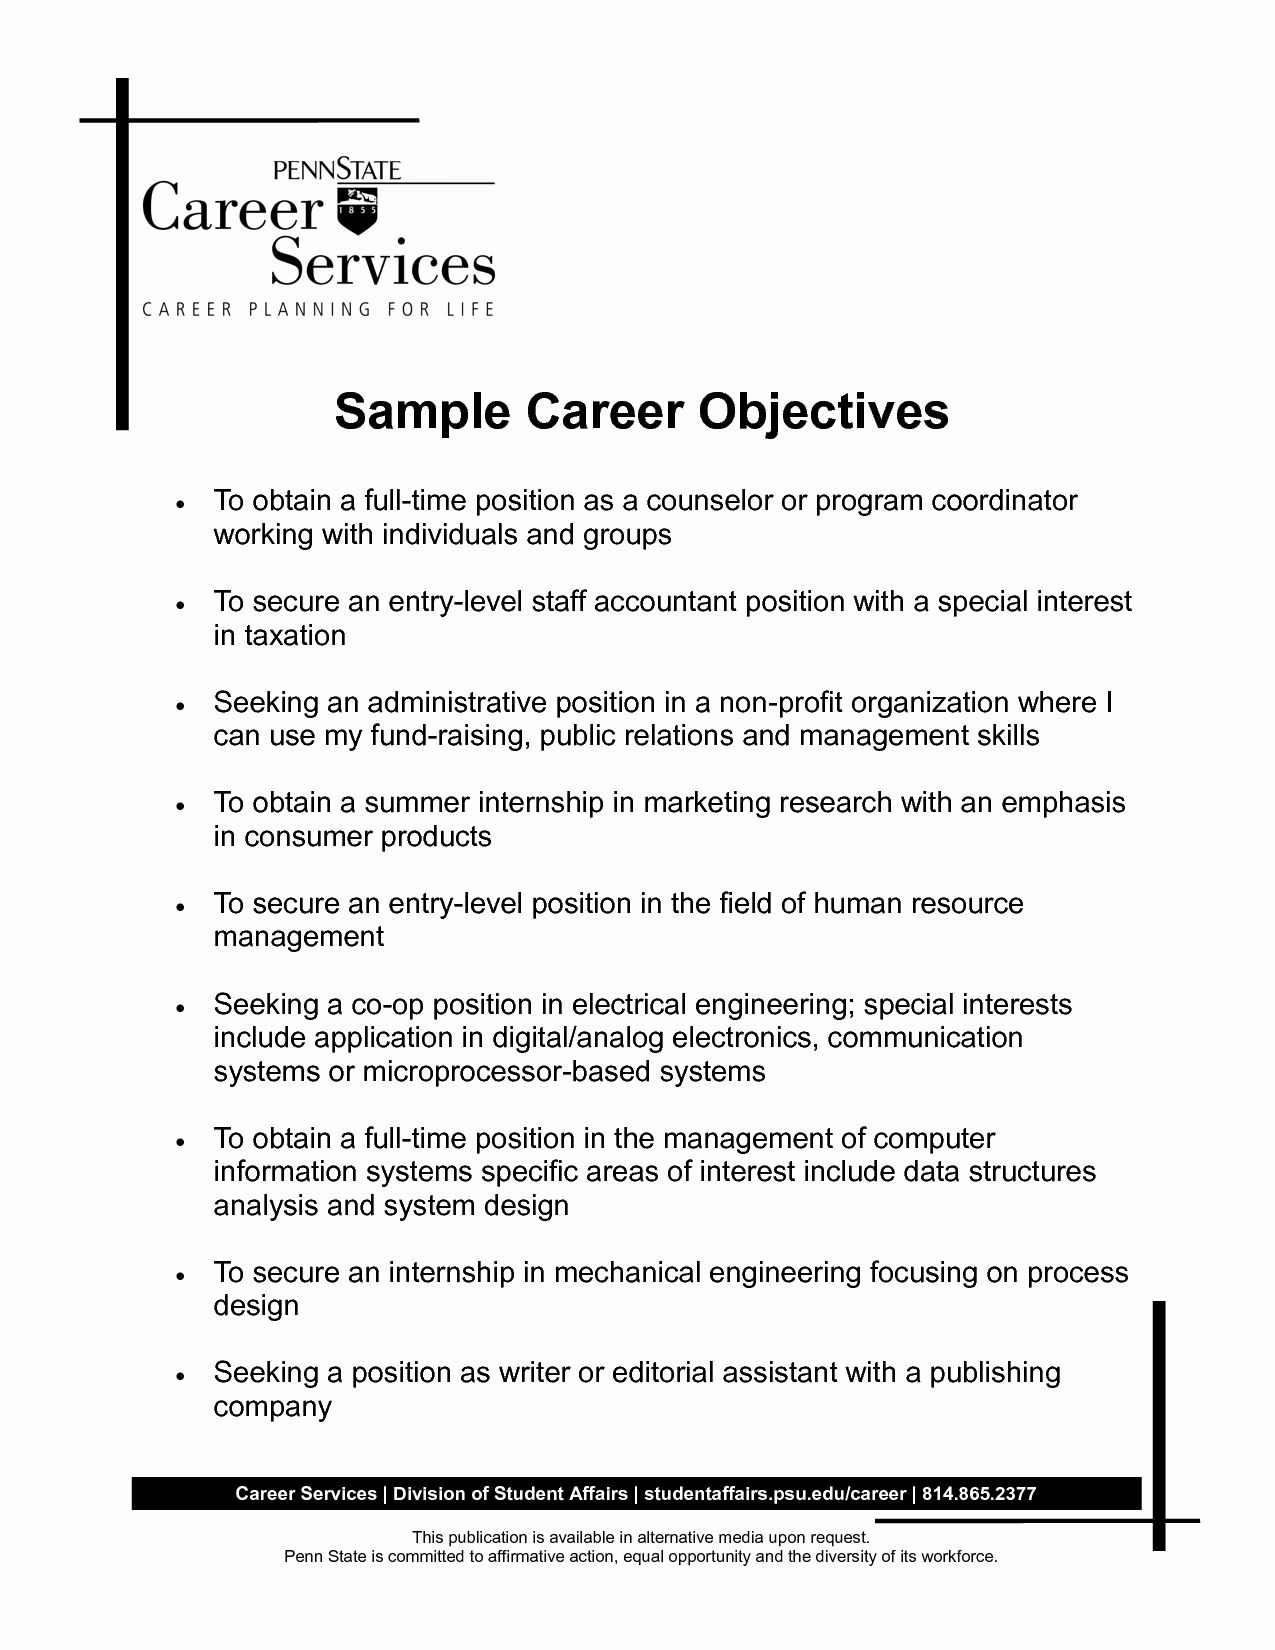 30 Accounting Resume Objective Statements In 2020 Resume